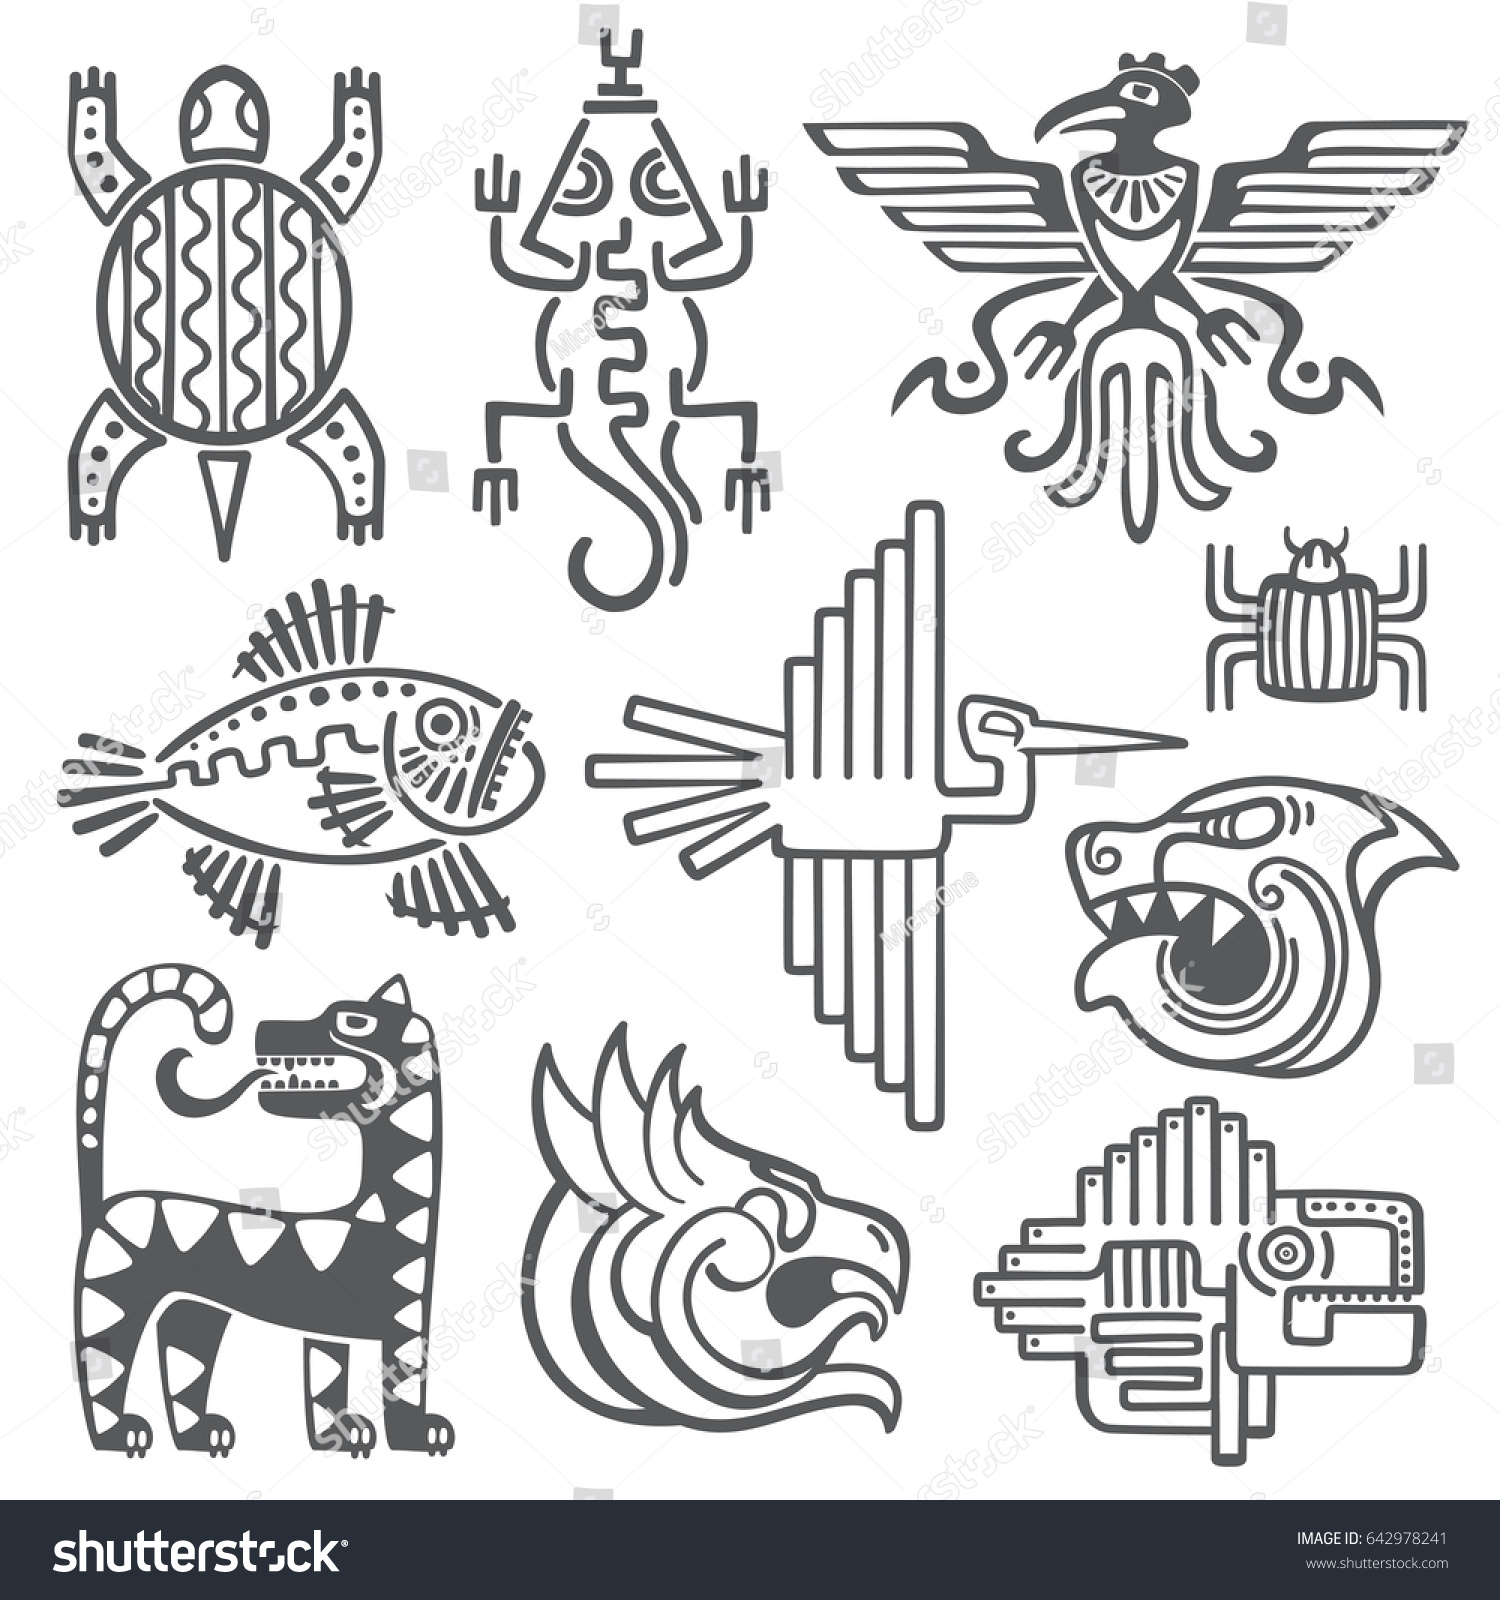 Historic aztec inca symbols mayan temple stock illustration historic aztec inca symbols mayan temple pattern native american culture signs tattoo biocorpaavc